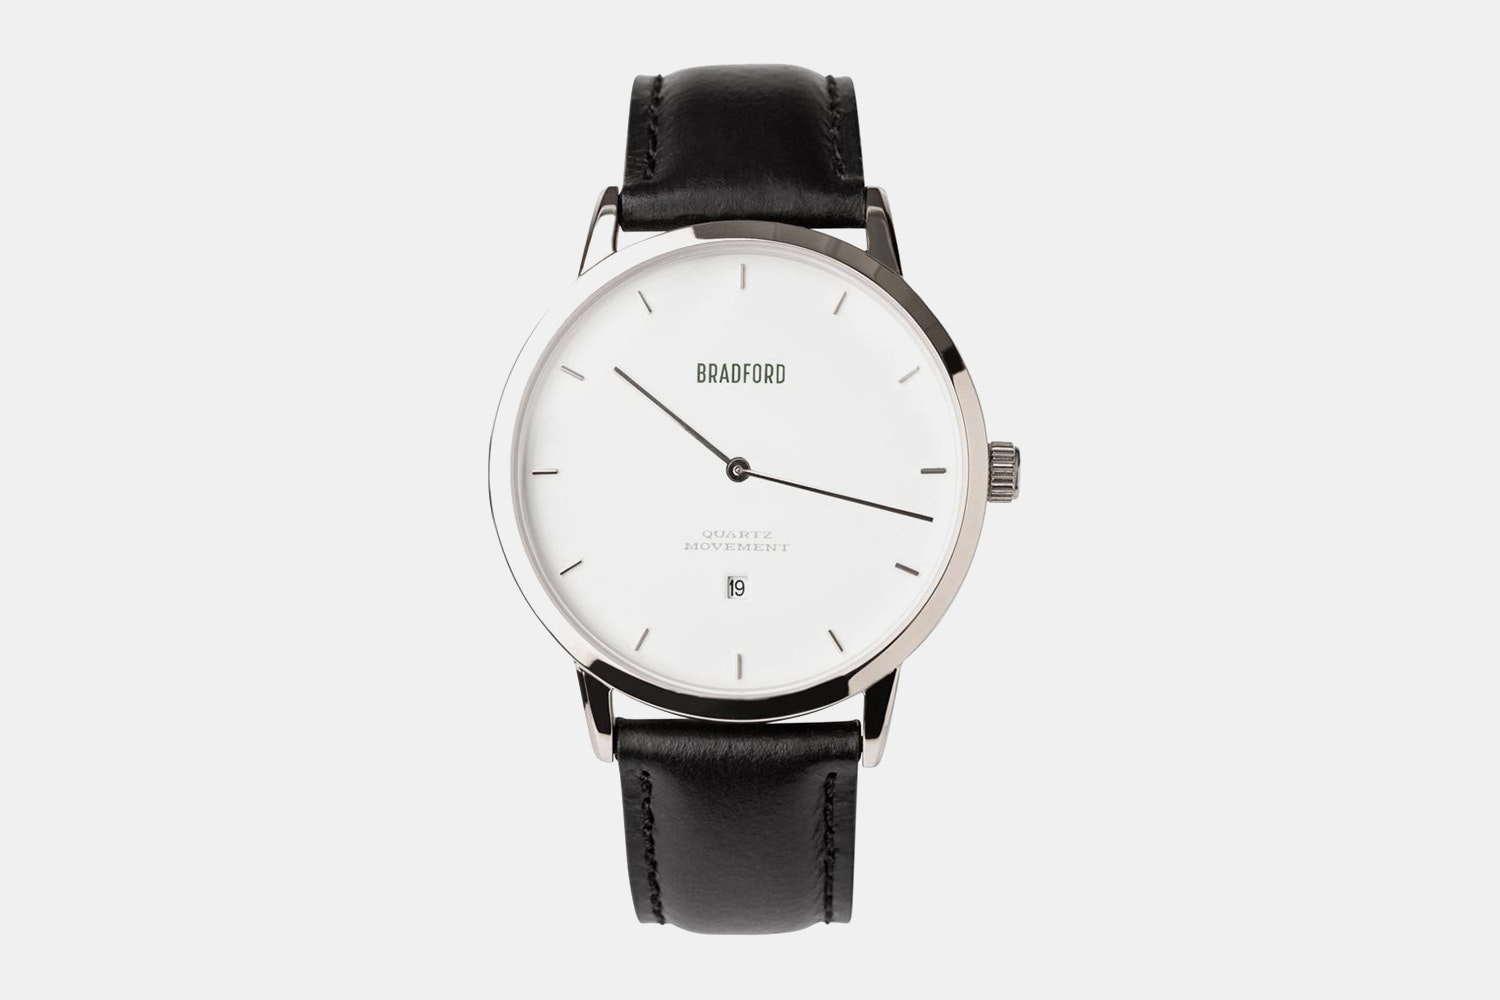 Stainless steel case, black leather strap